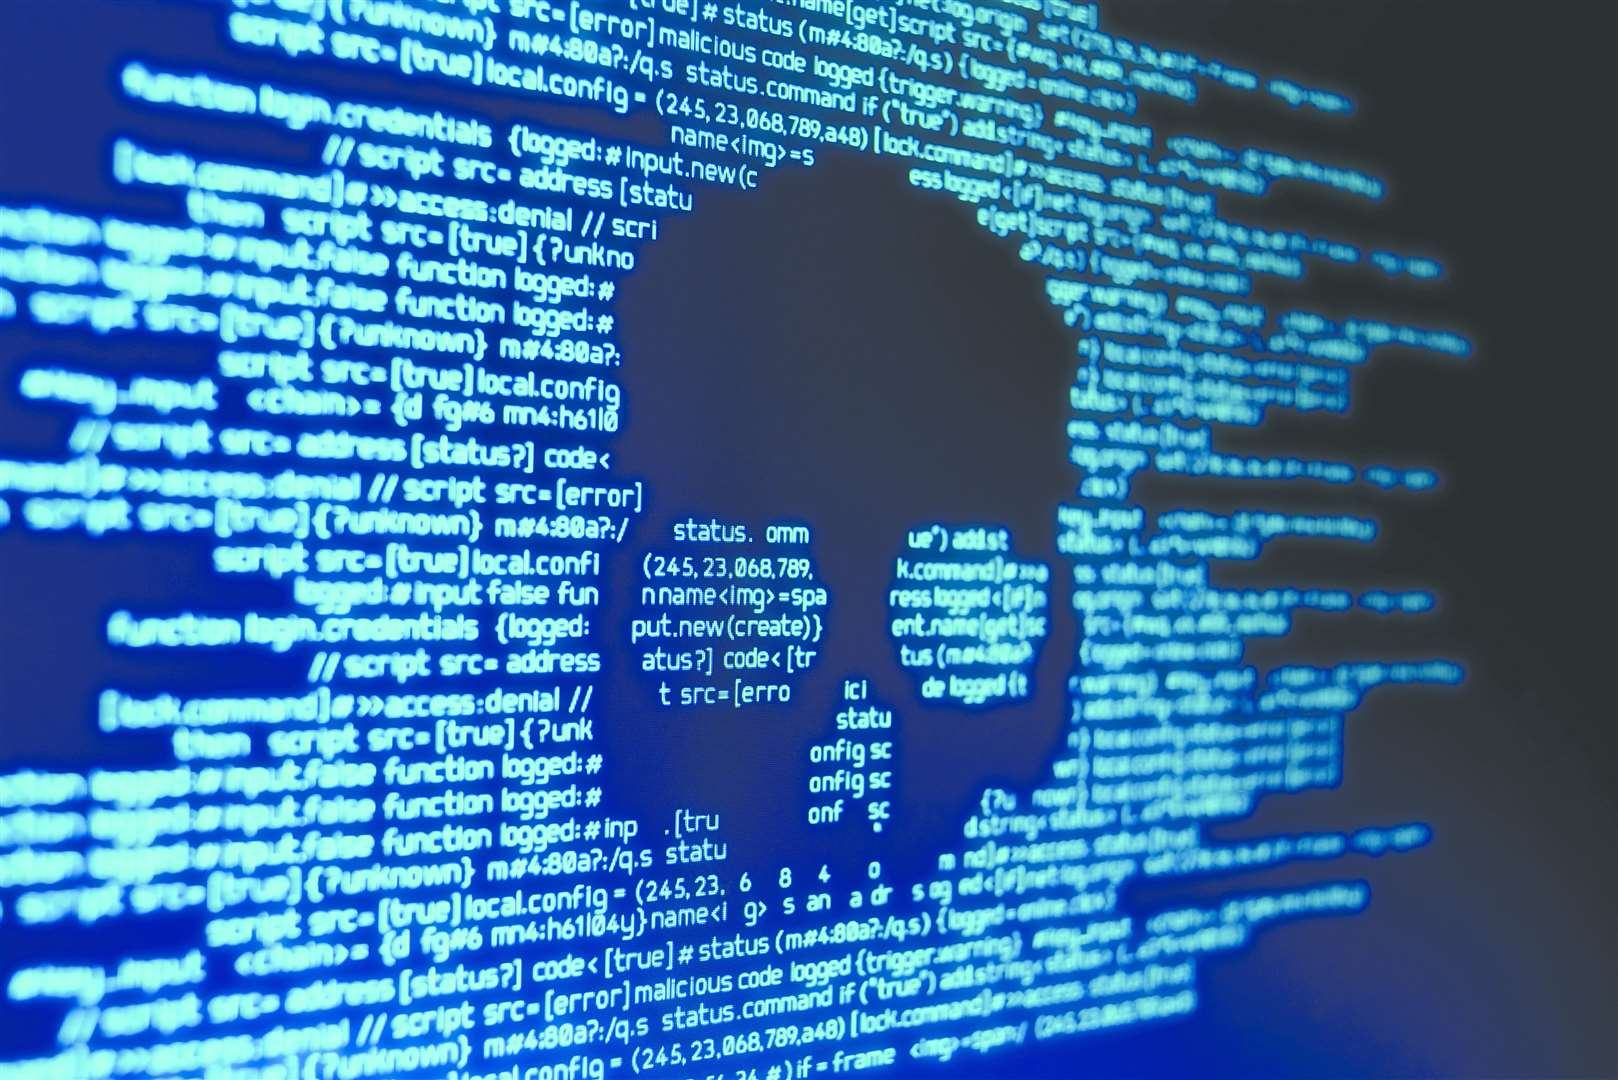 Computer code on a screen with a skull representing a computer virus attack